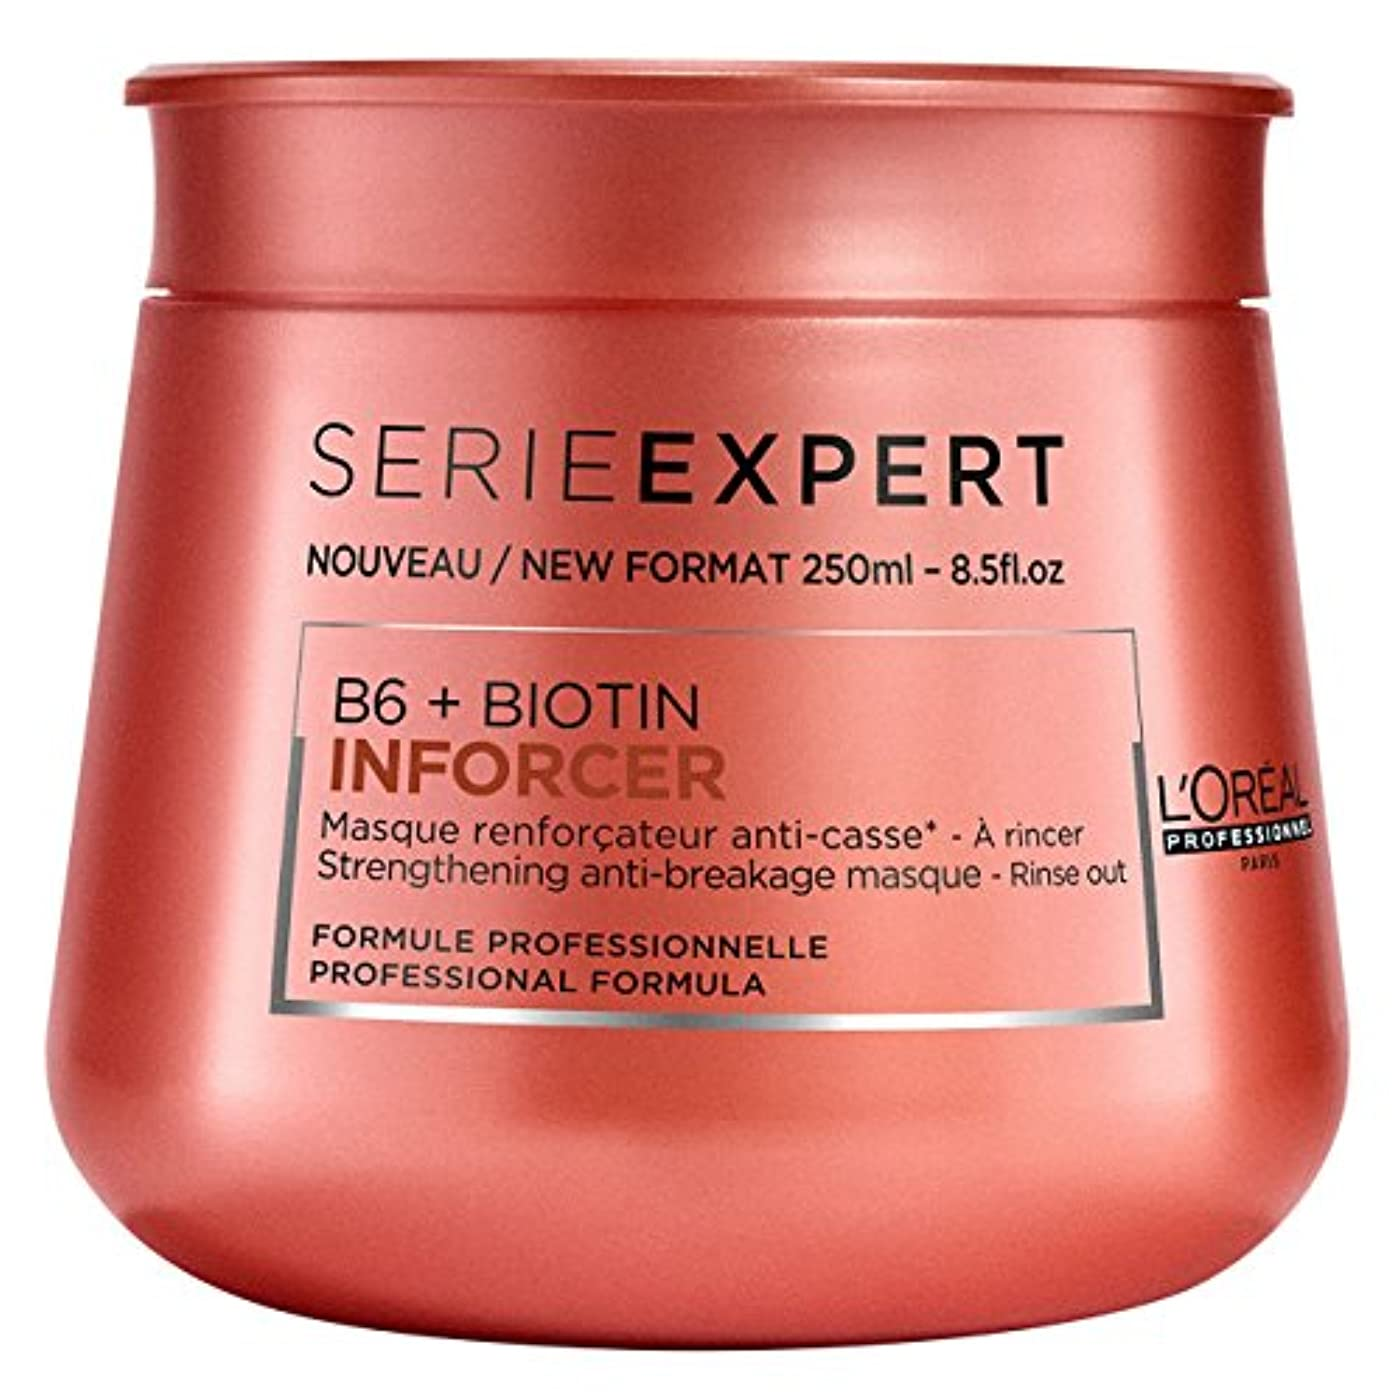 恐怖症襲撃発疹L'Oreal Serie Expert B6 + Biotin INFORCER Strengthening Anti-Breakage Masque 250 ml [並行輸入品]